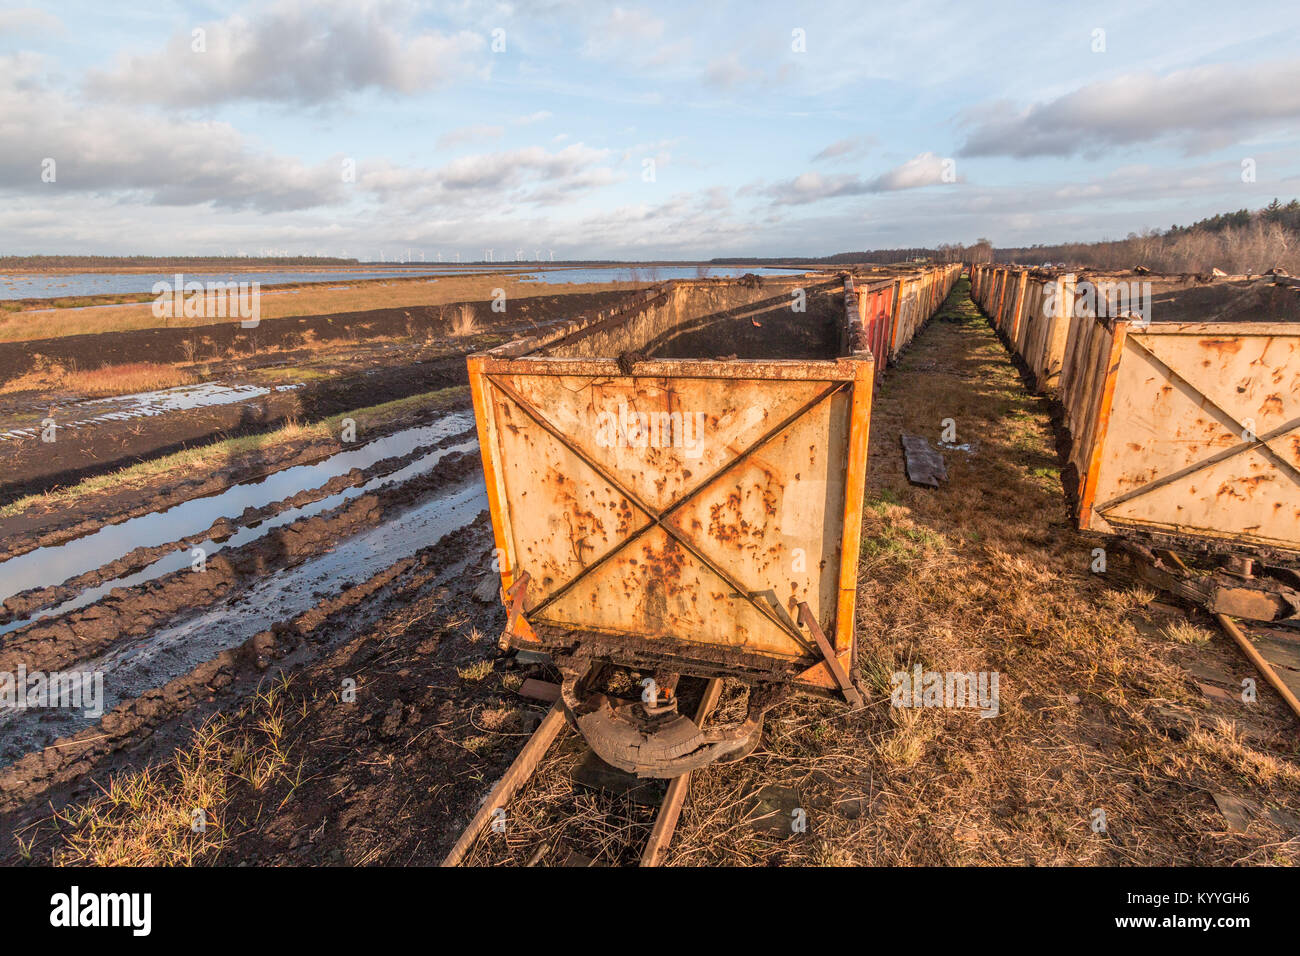 Peat mining area with old empty carts in the foreground - Stock Image